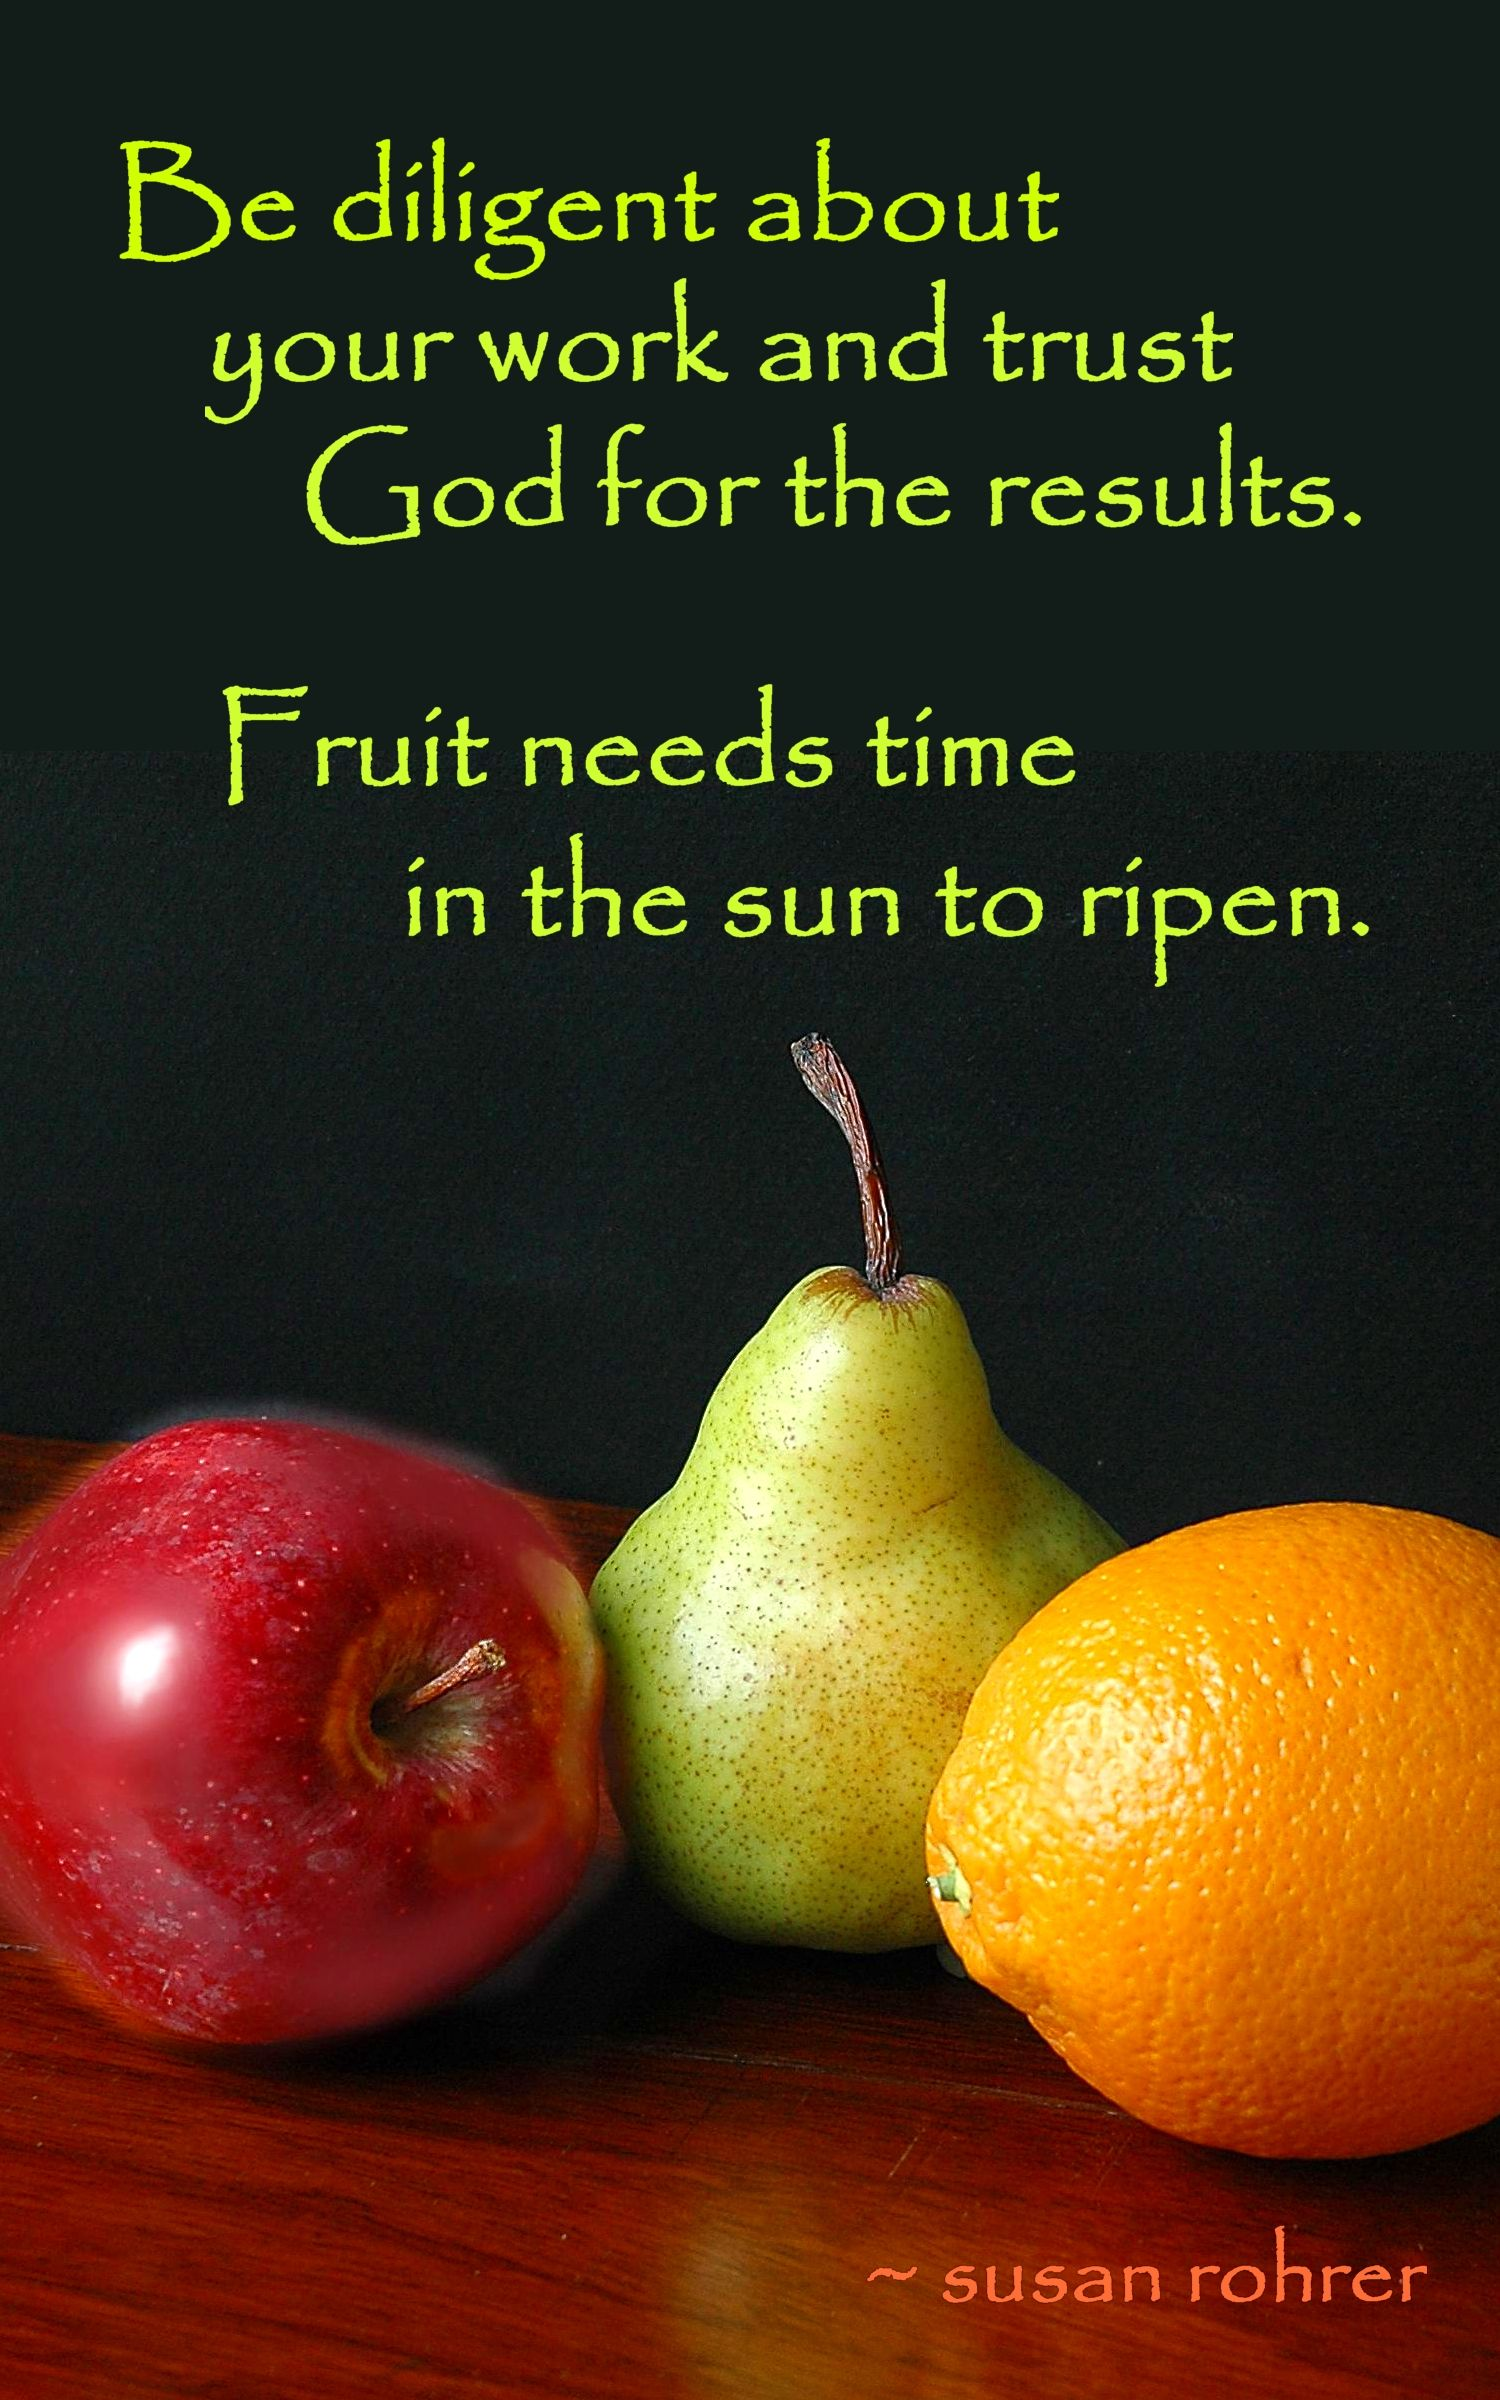 Inspirational Quotes On Bearing Fruit Christ Who Is Your Life